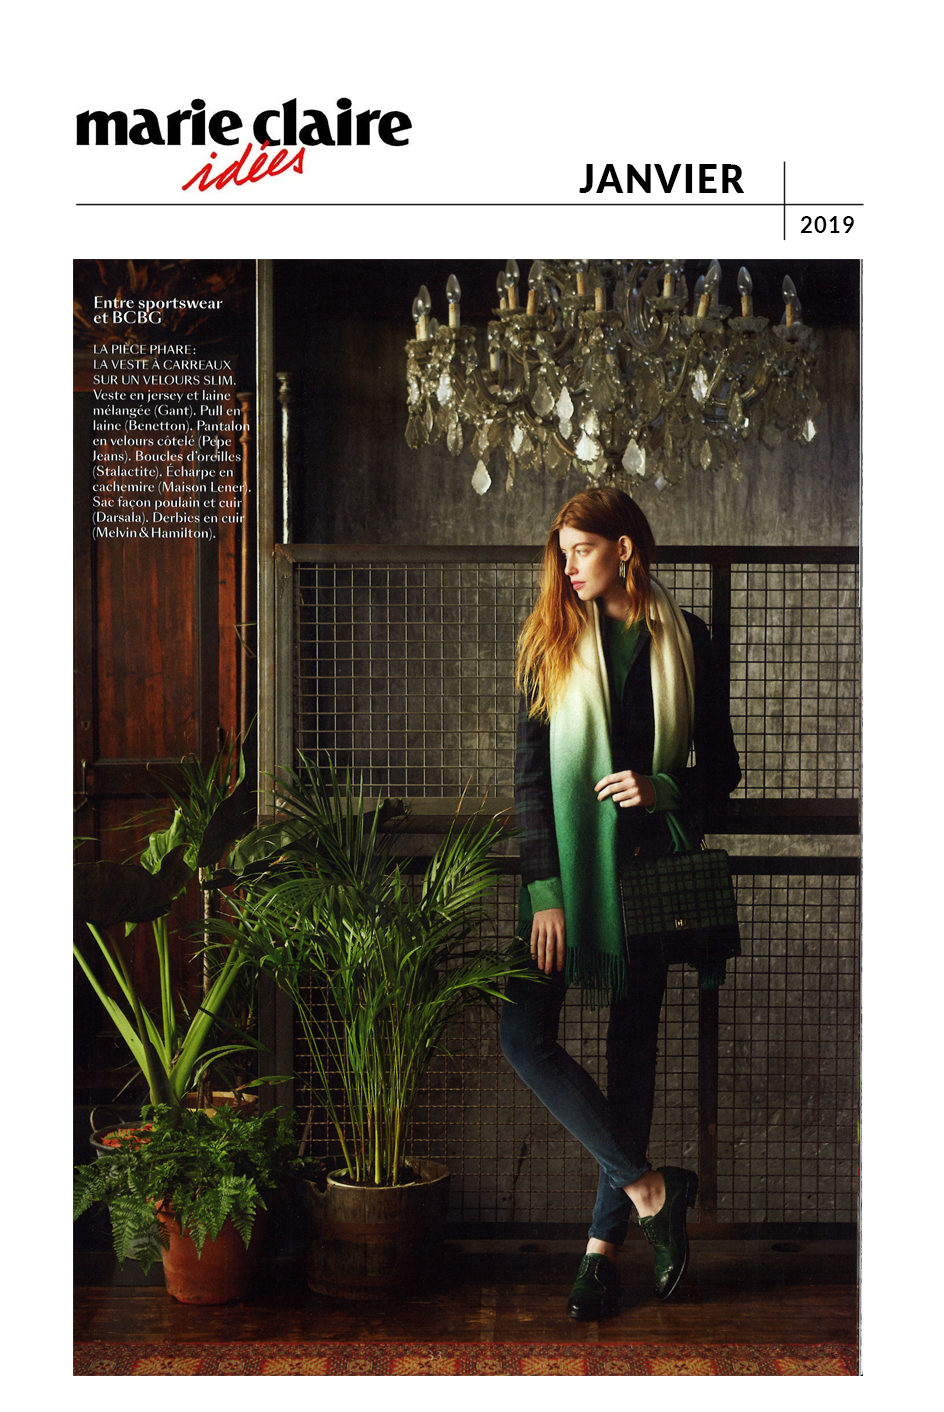 marie claire idees1